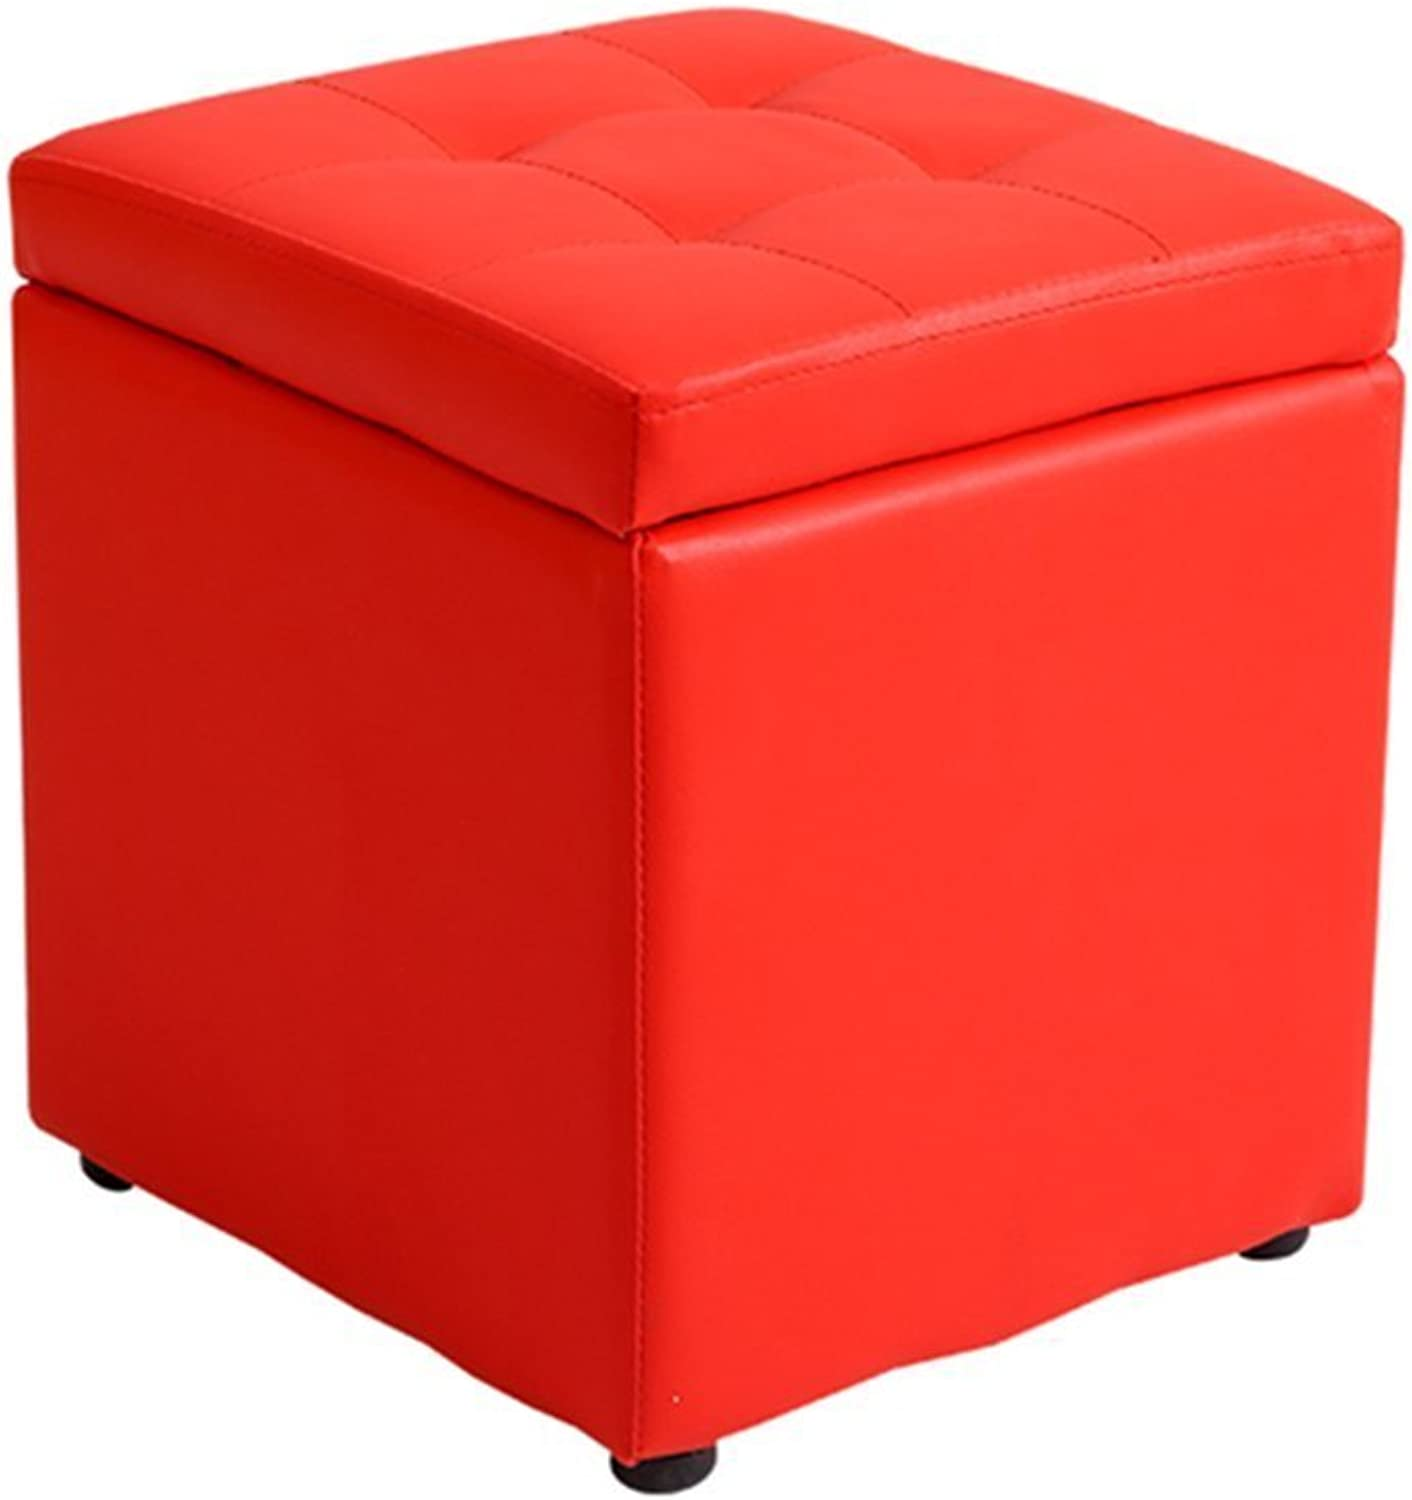 RHHWJJXB Low Stool Storage Stool Storage Stool Fashion Leather Bench Change shoes Bench Pier Hall Sofa Bench Footstool shoes Bench Stool Small Stool (color   Red)